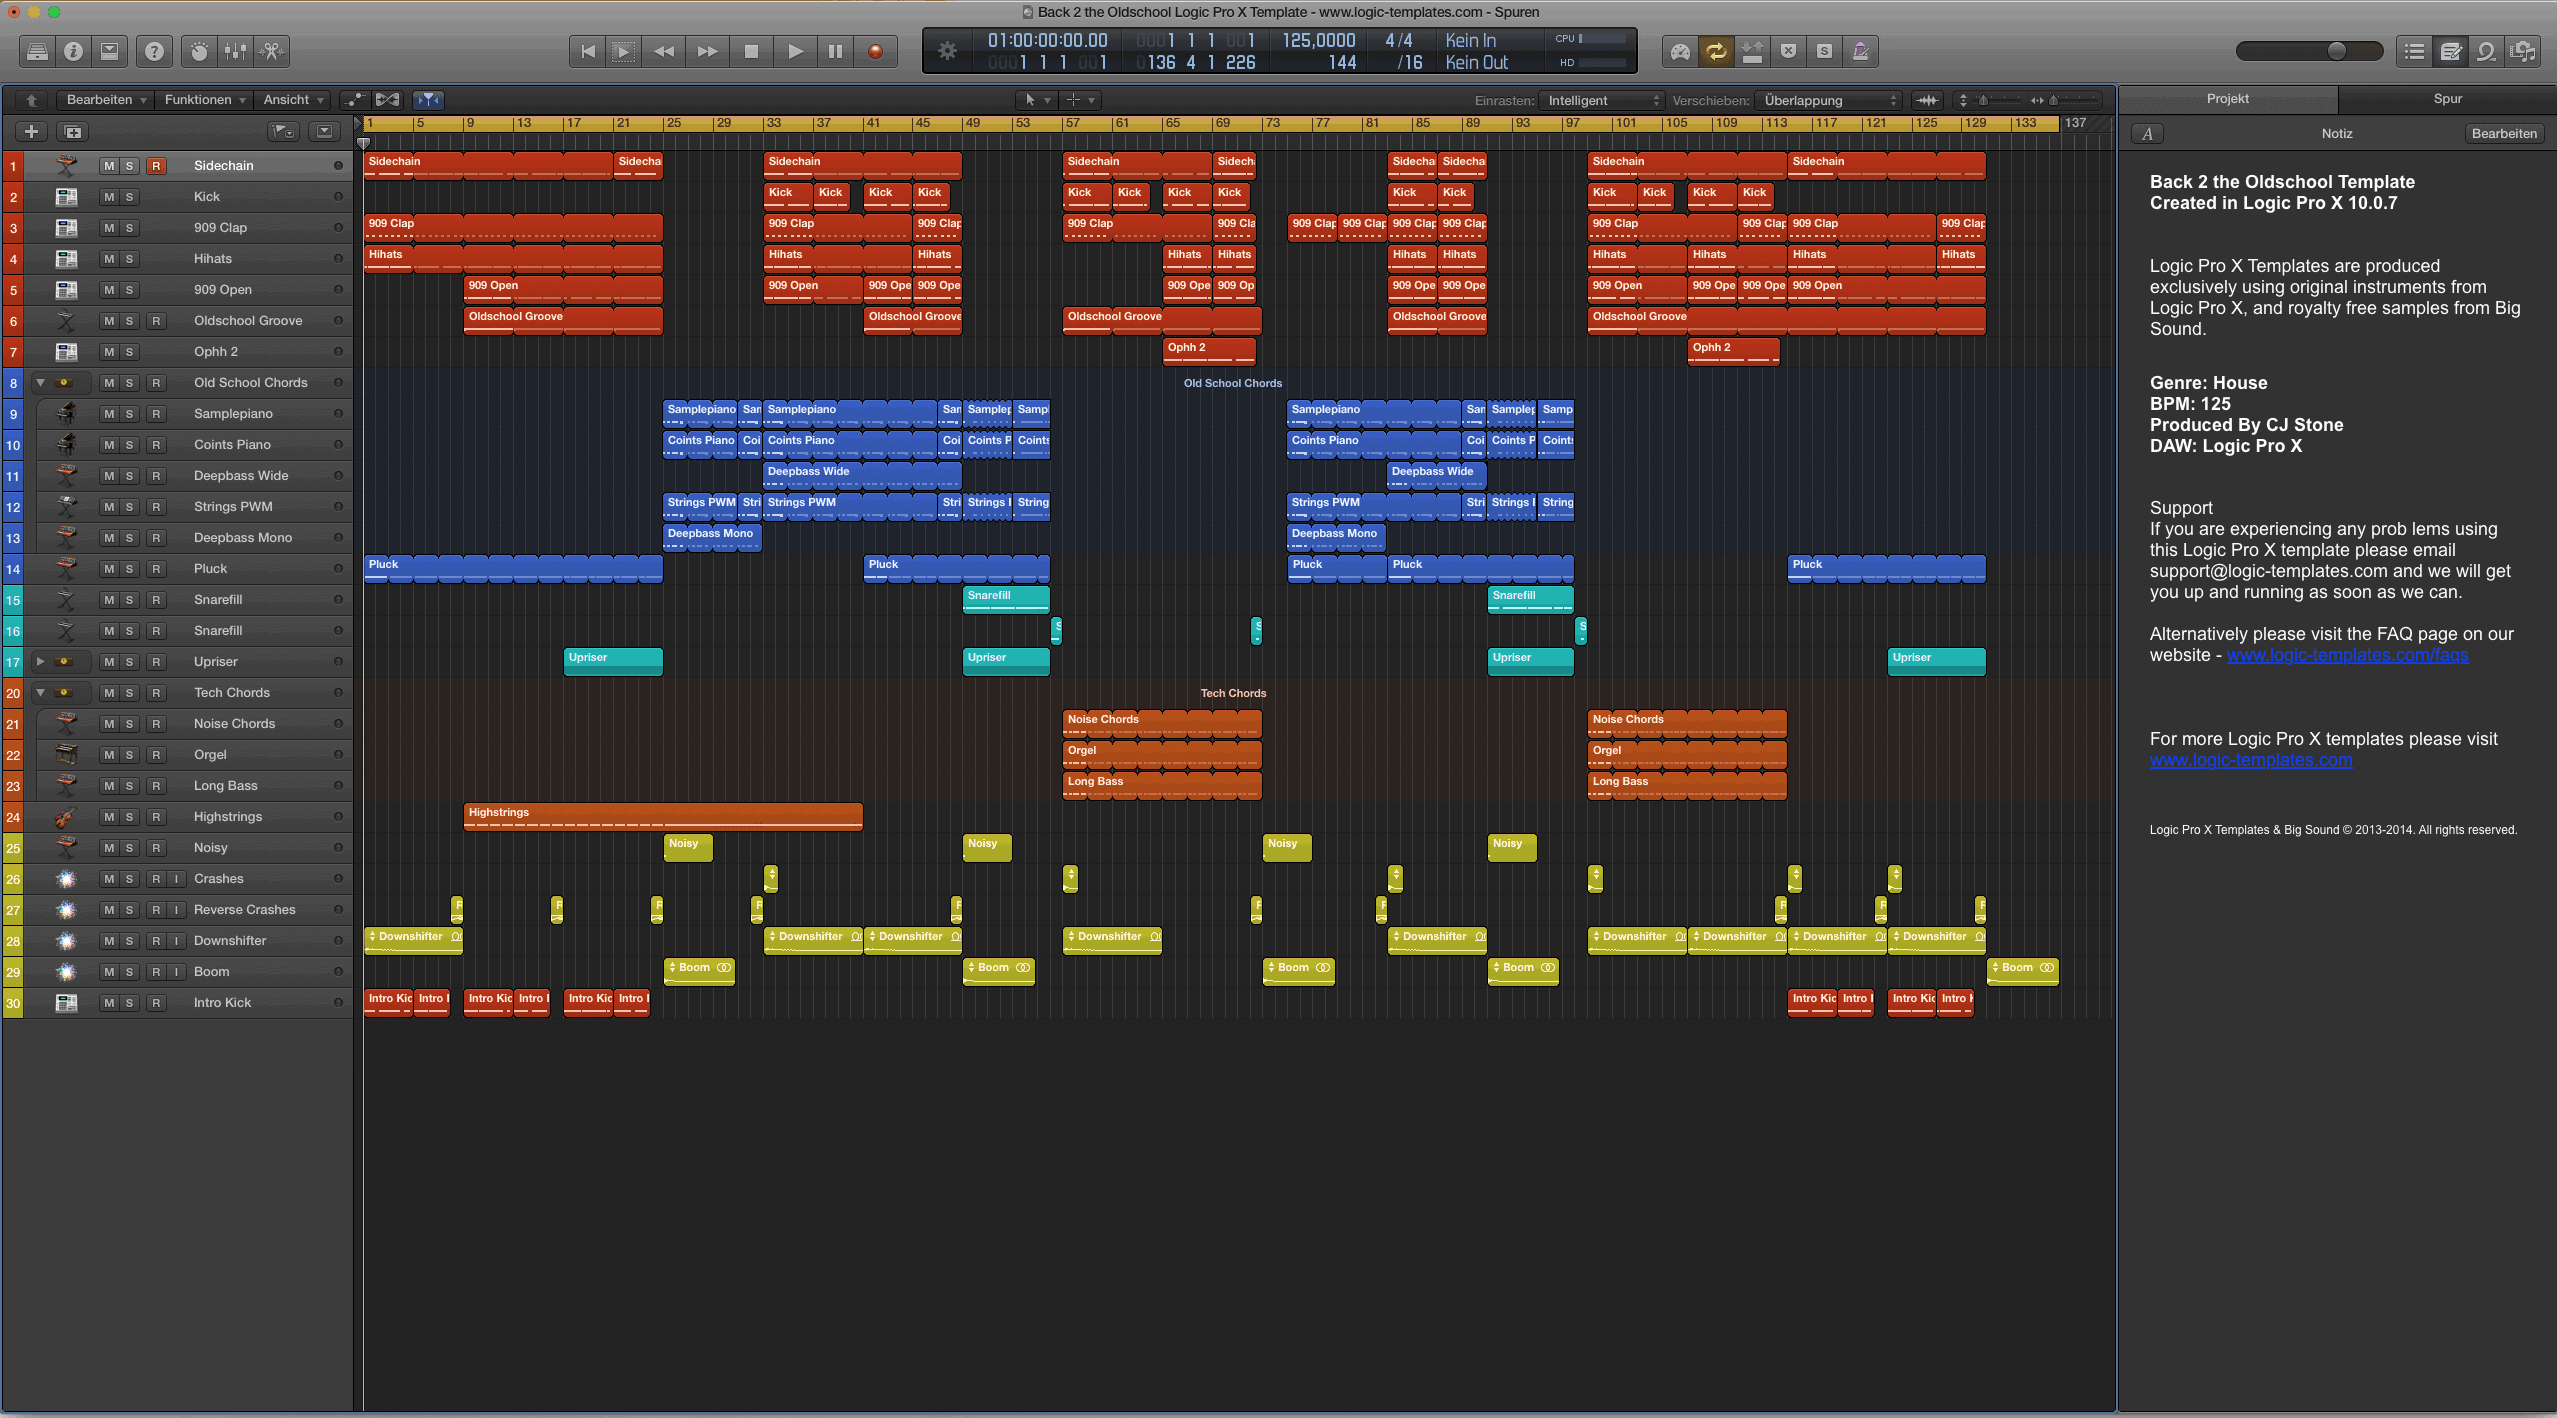 Back 2 the Oldschool Logic Pro X Template